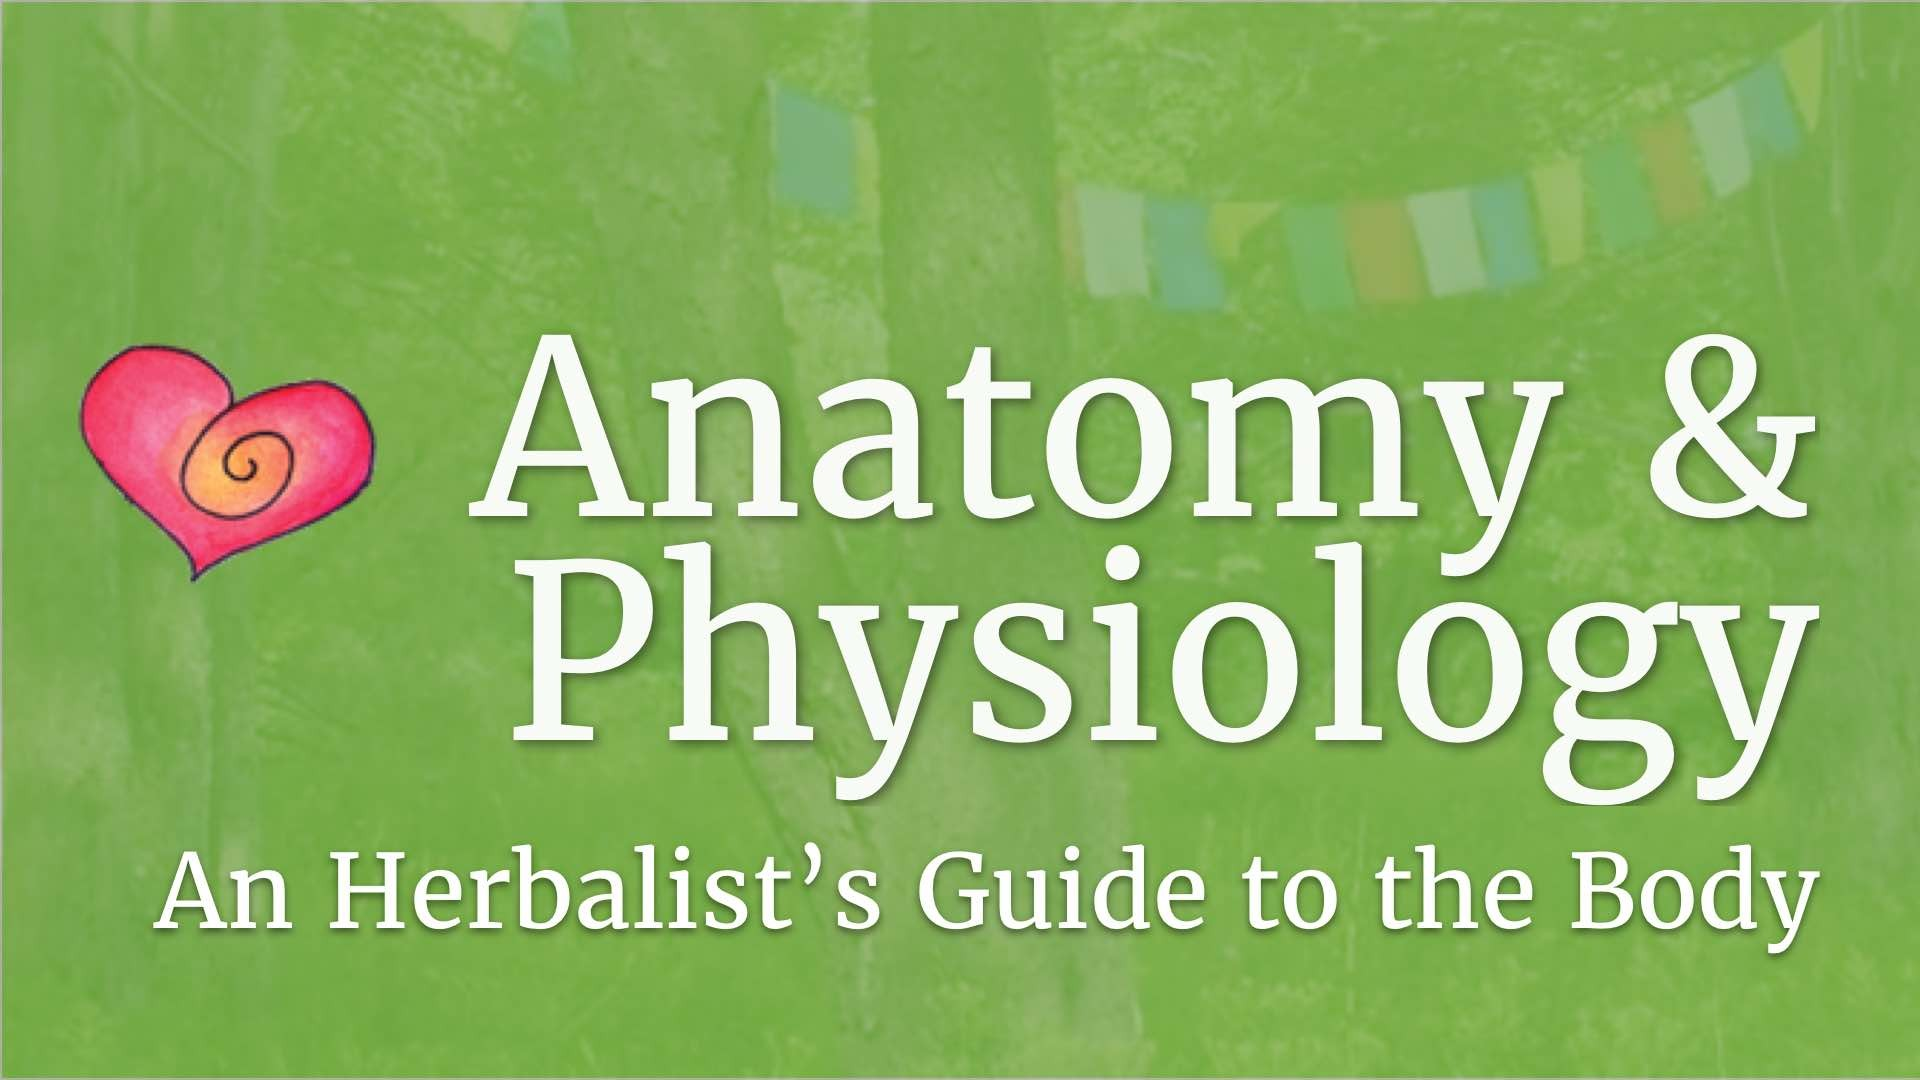 Online Anatomy & Physiology for Herbalists | Heartstone Online